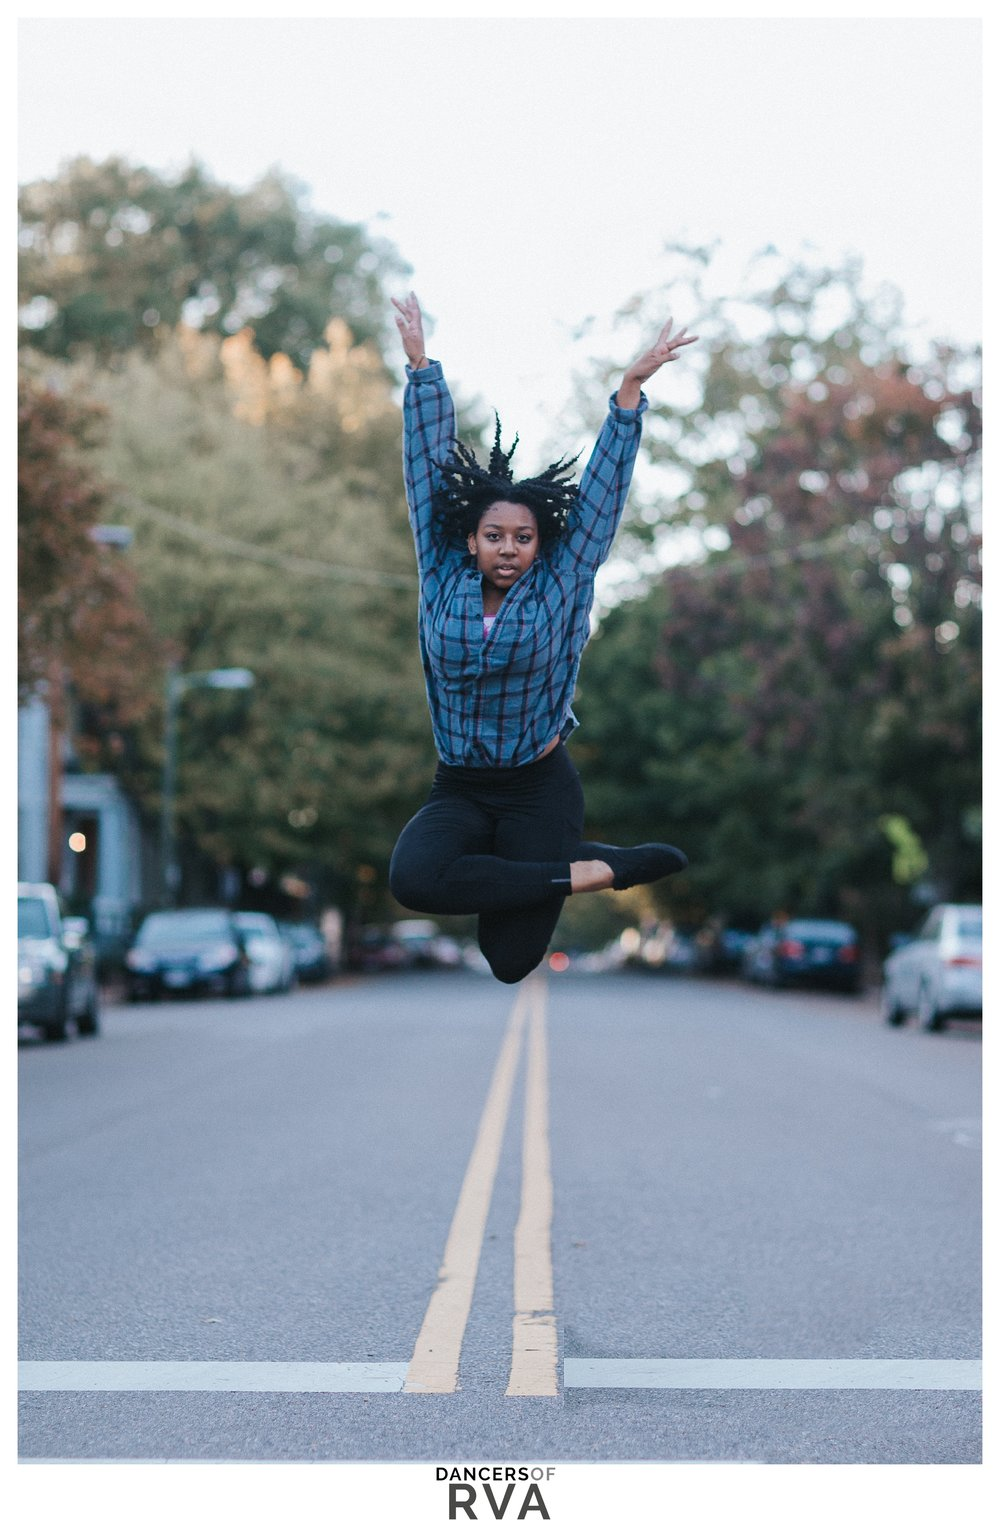 VCU dancer jumping in the streets of Richmond, VA